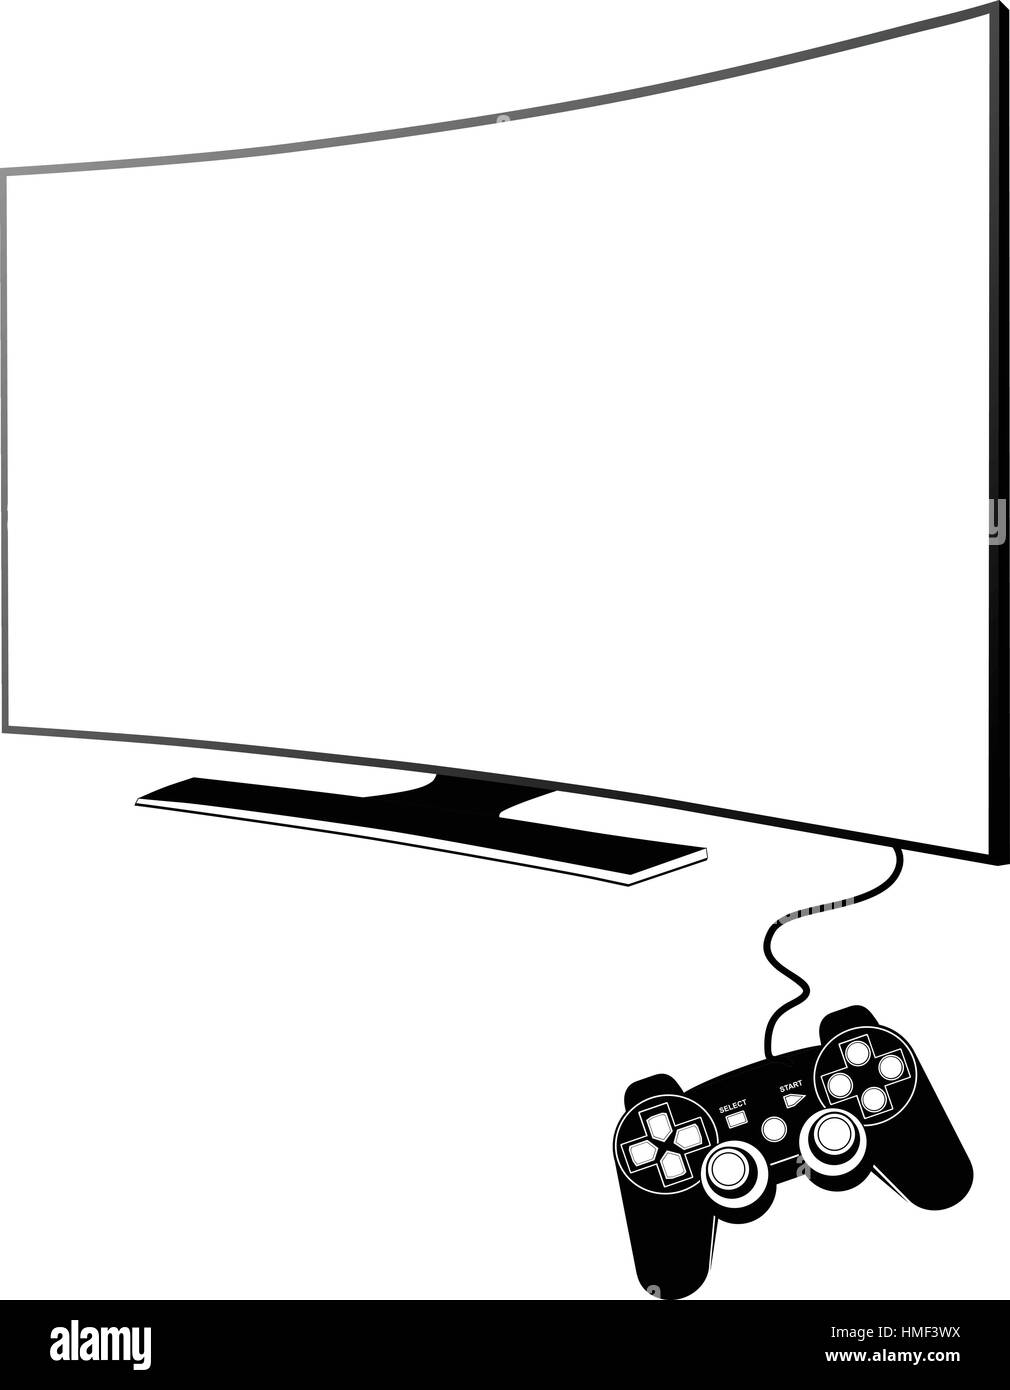 Sony Playstation 4 with TV - Stock Image